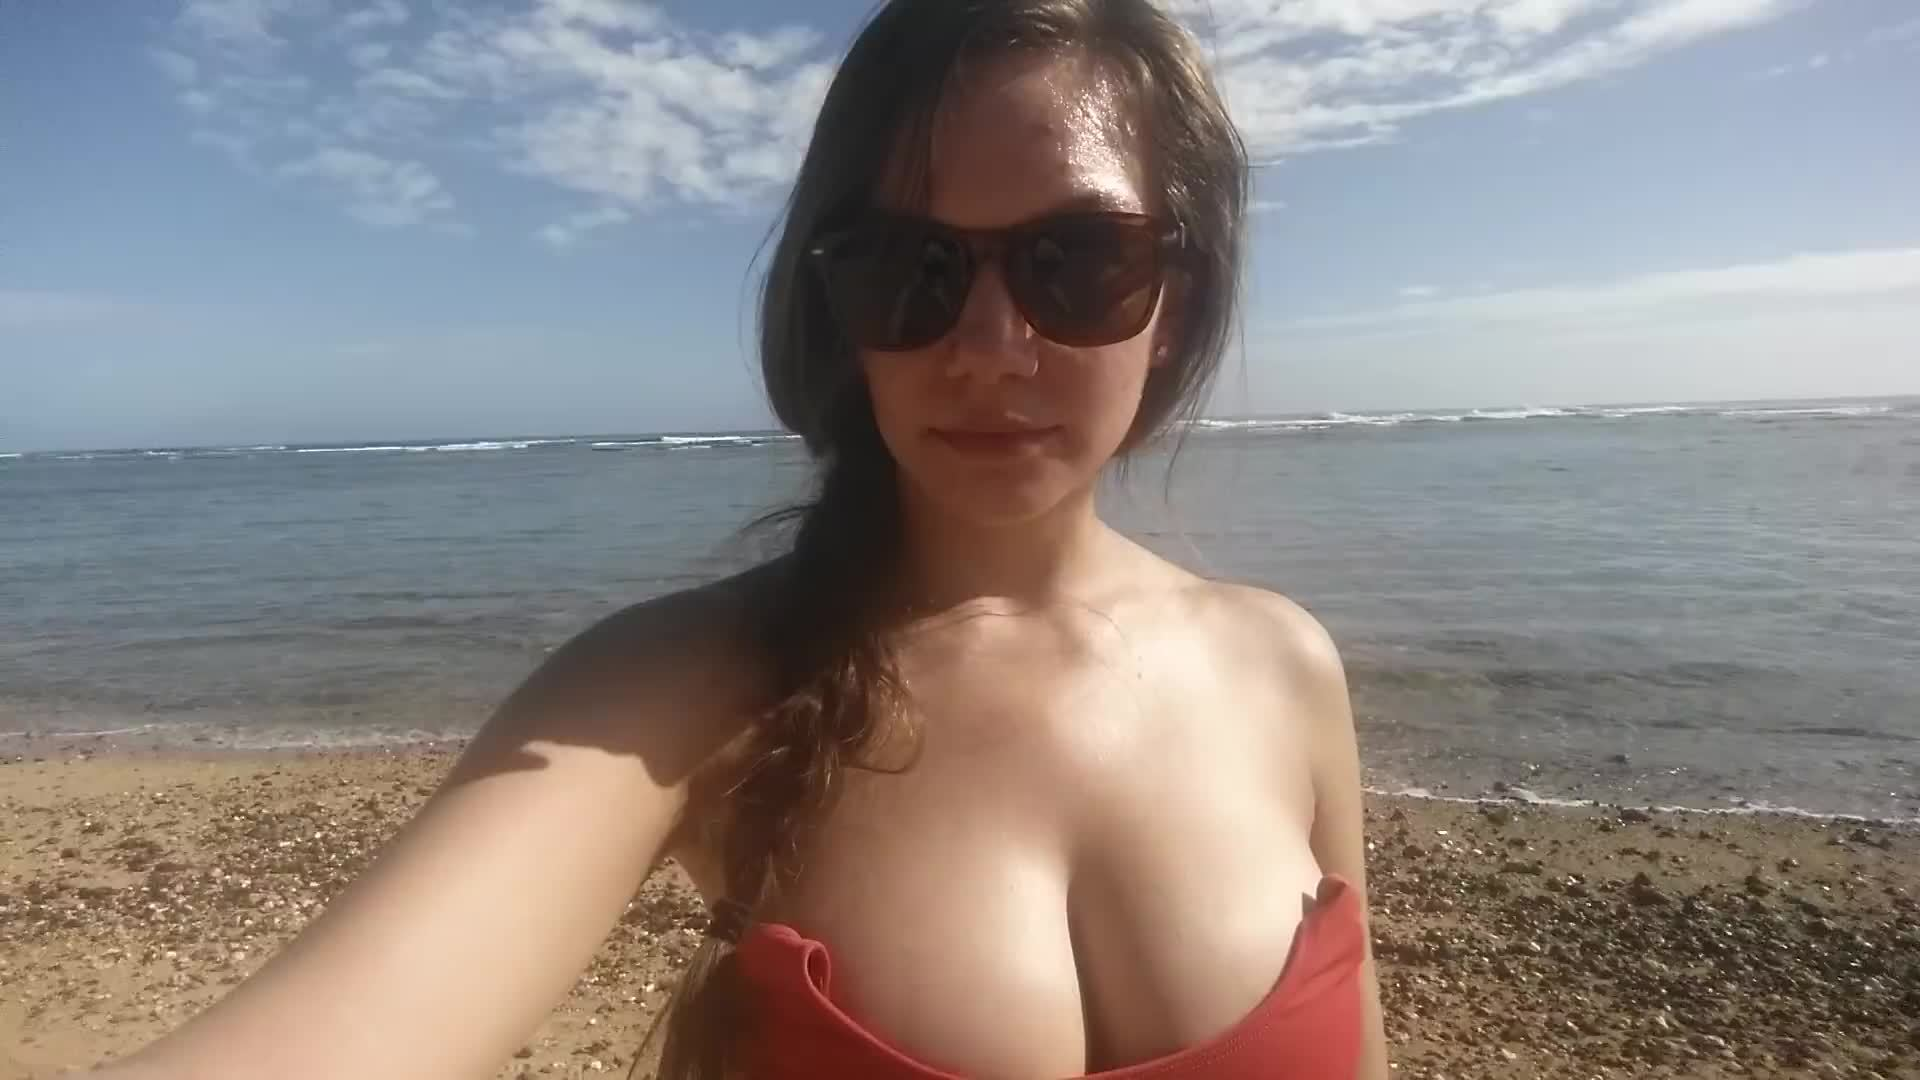 huge-sexy-boobs-beach-sex-gif